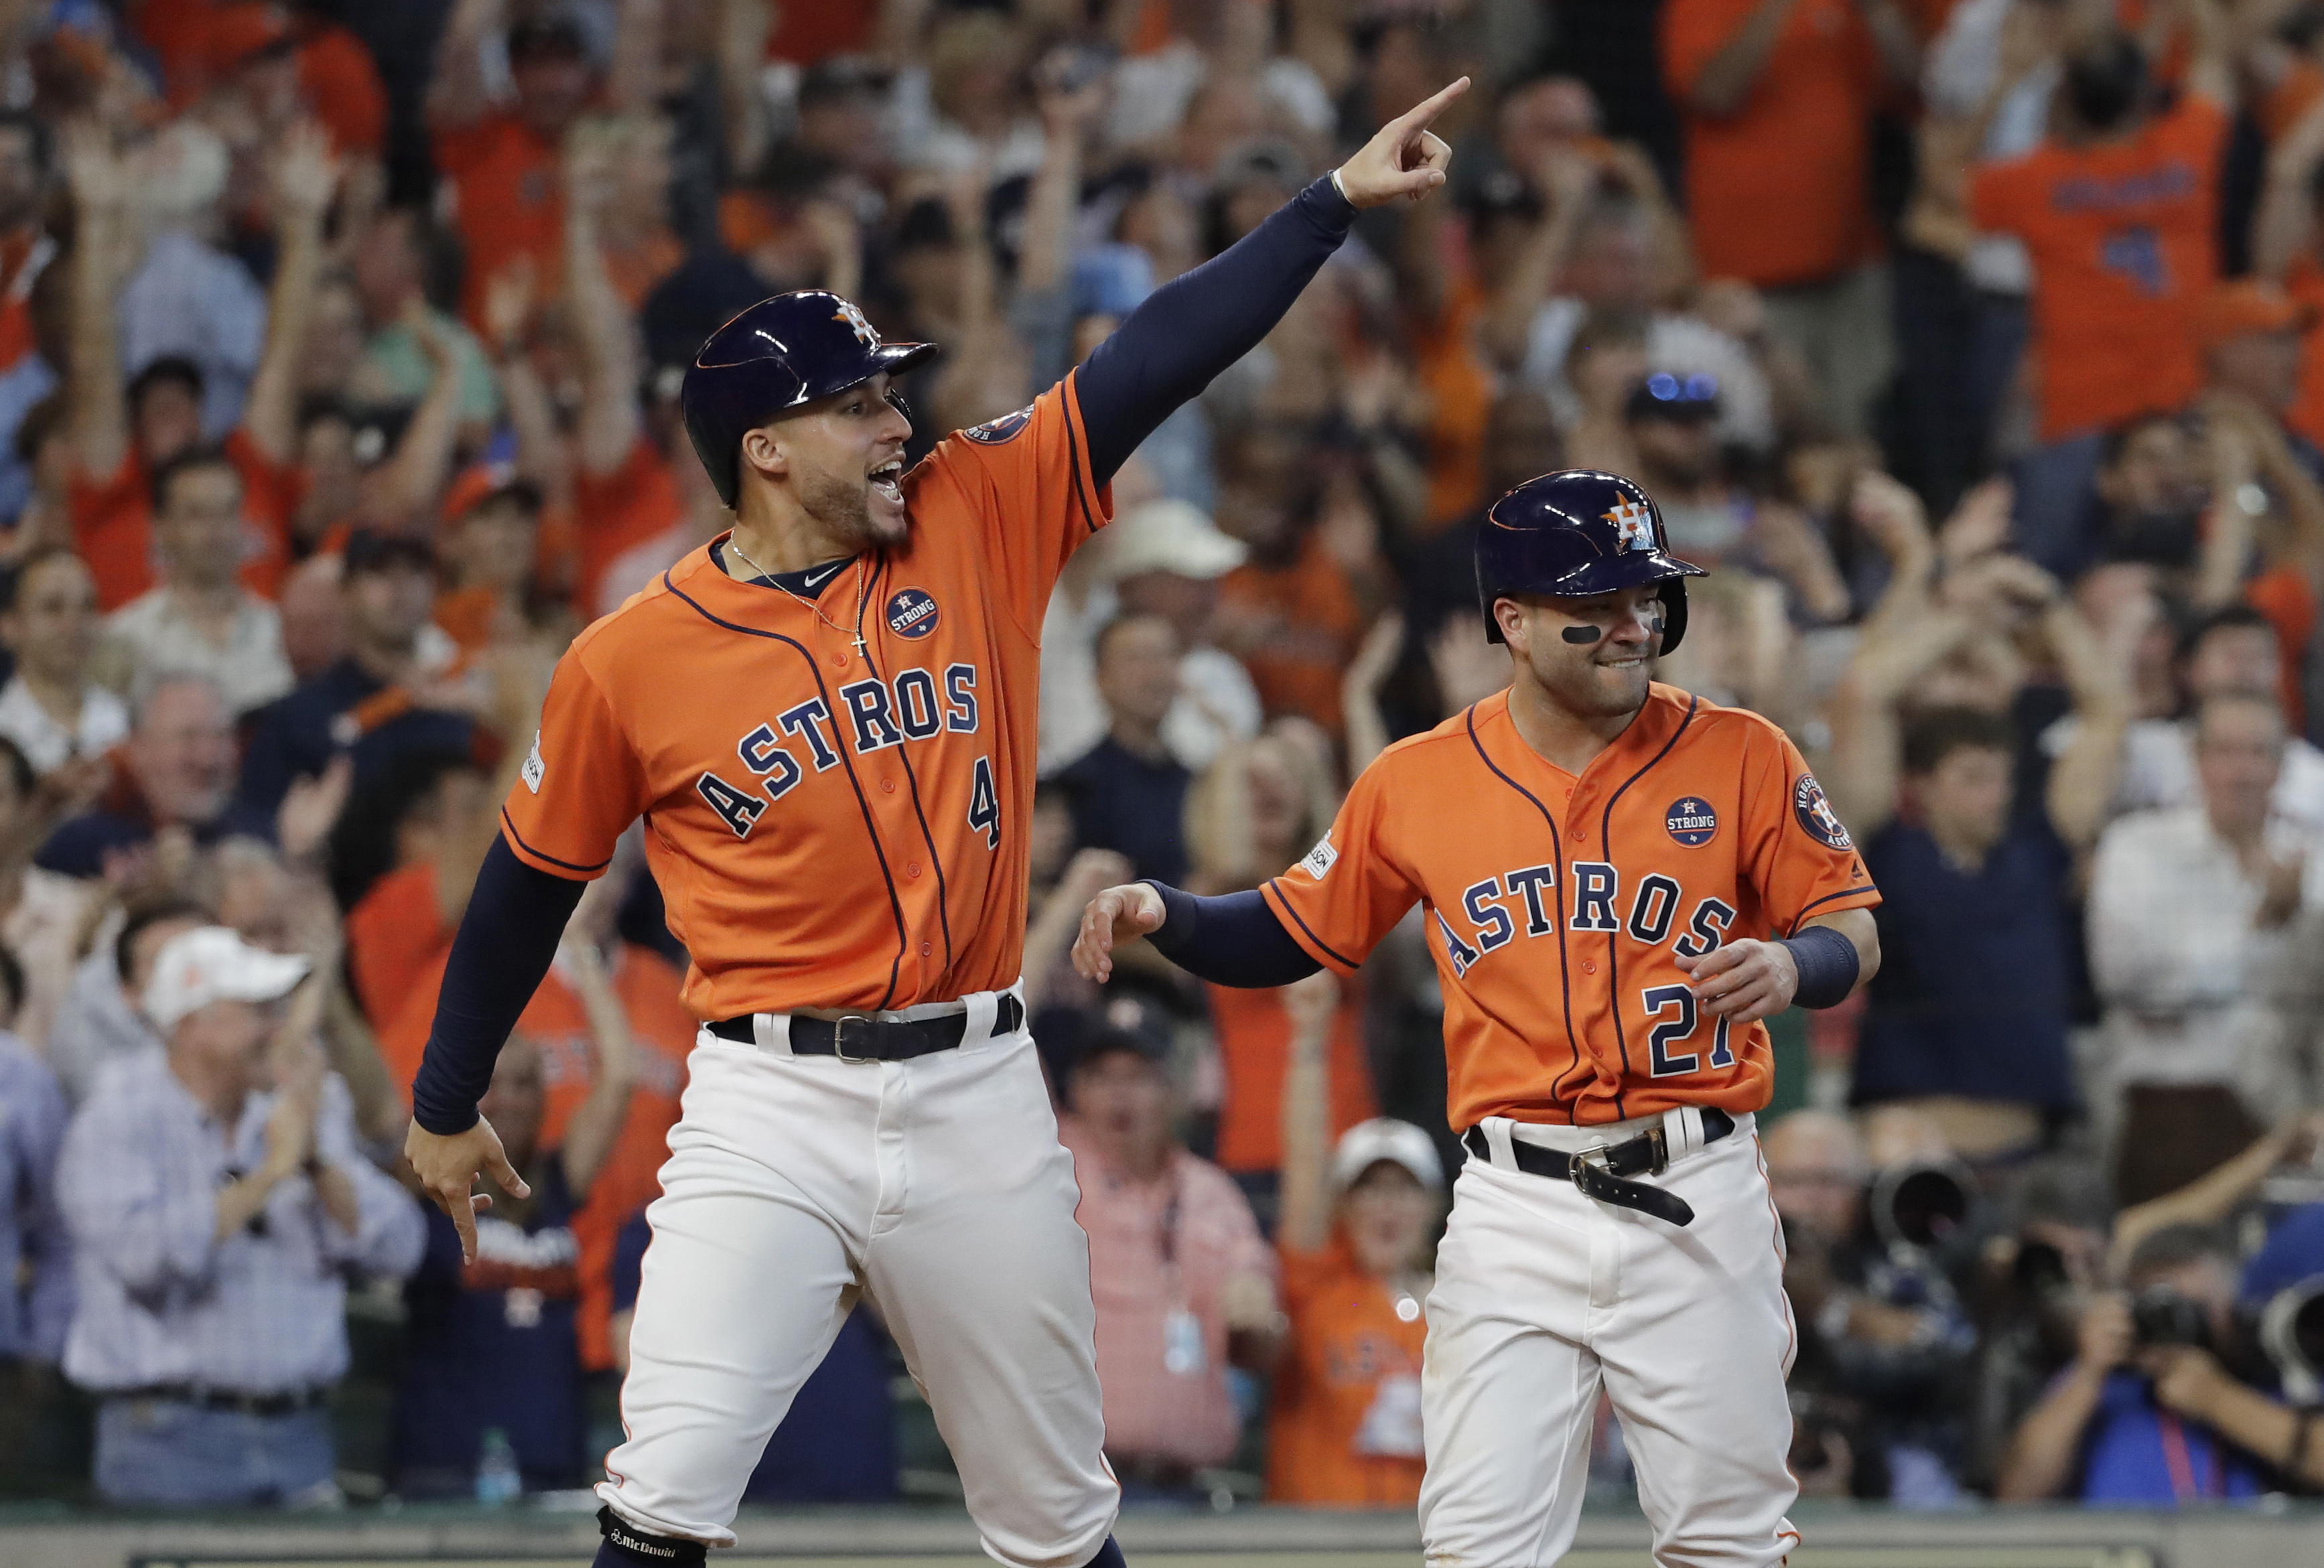 <div class='meta'><div class='origin-logo' data-origin='AP'></div><span class='caption-text' data-credit='David J. Phillip'>Houston Astros' George Springer (4) and Jose Altuve (27) celebrate after they scored on teammate Carlos Correa's double in Game 2.</span></div>